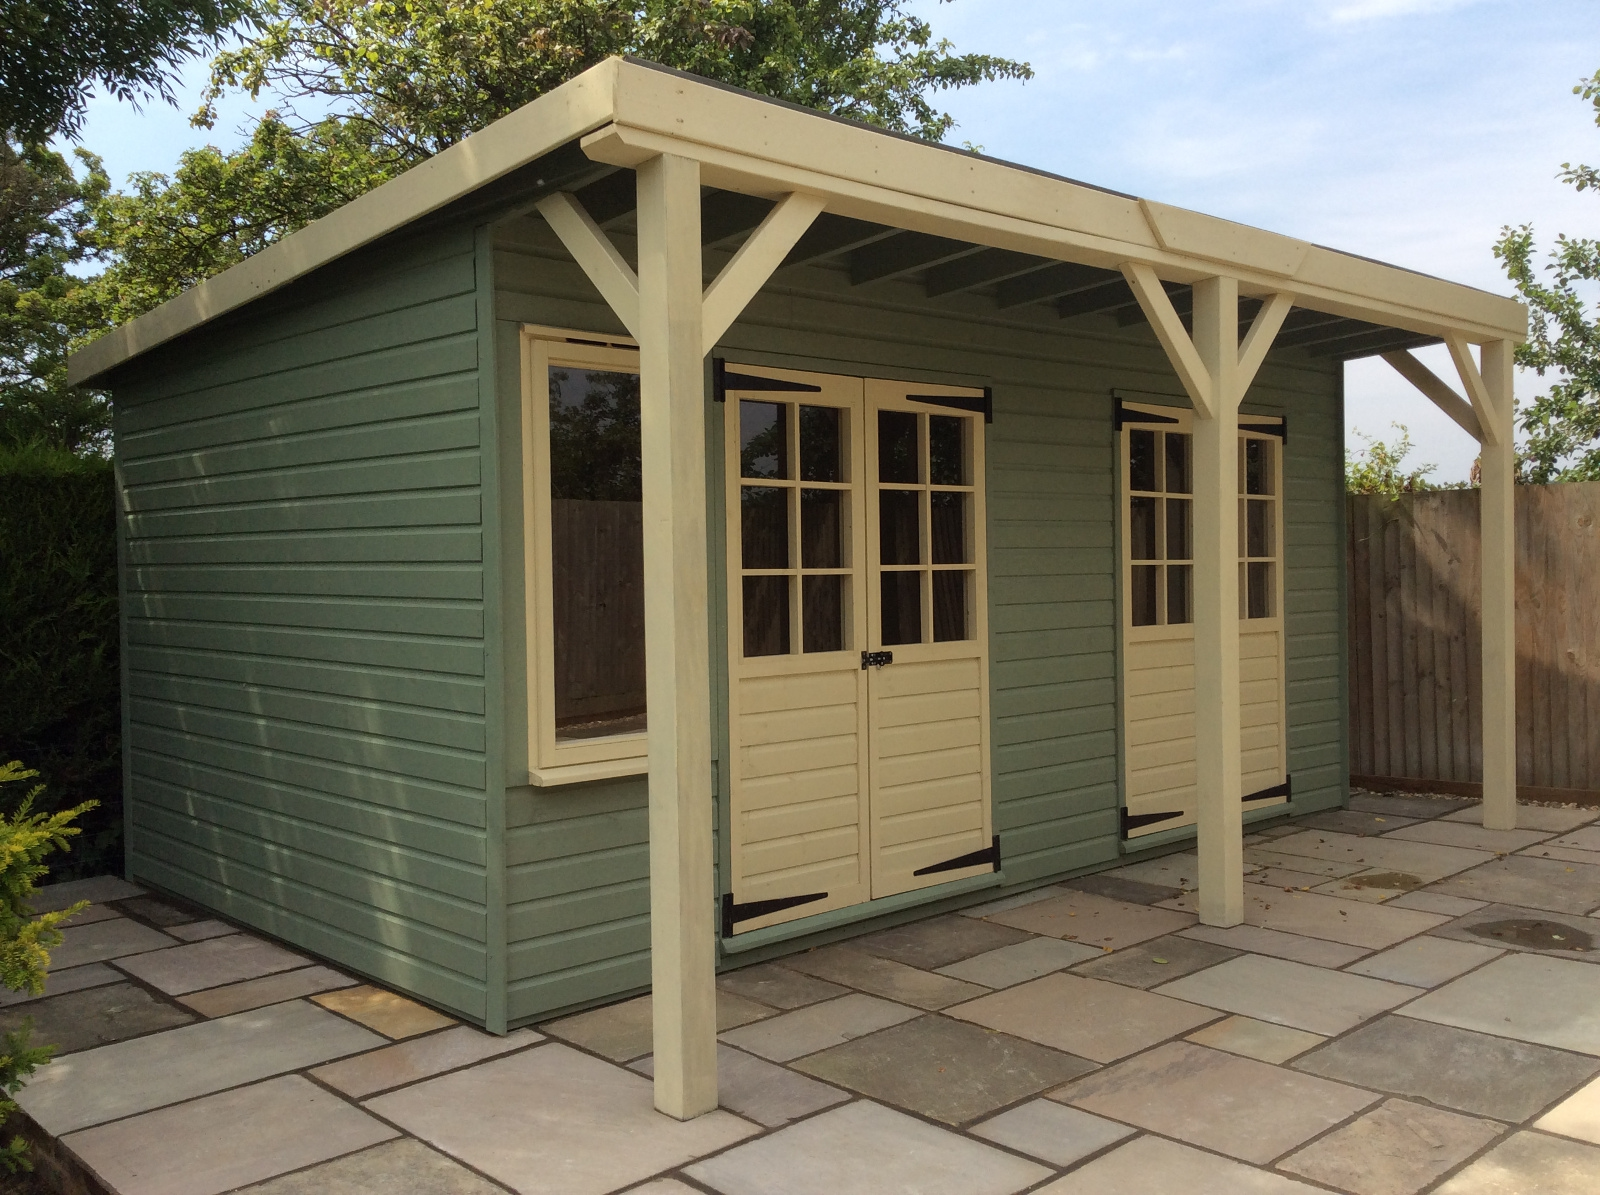 Smartsheds | Bespoke Building | Home Office | Garden Building | Garden Office